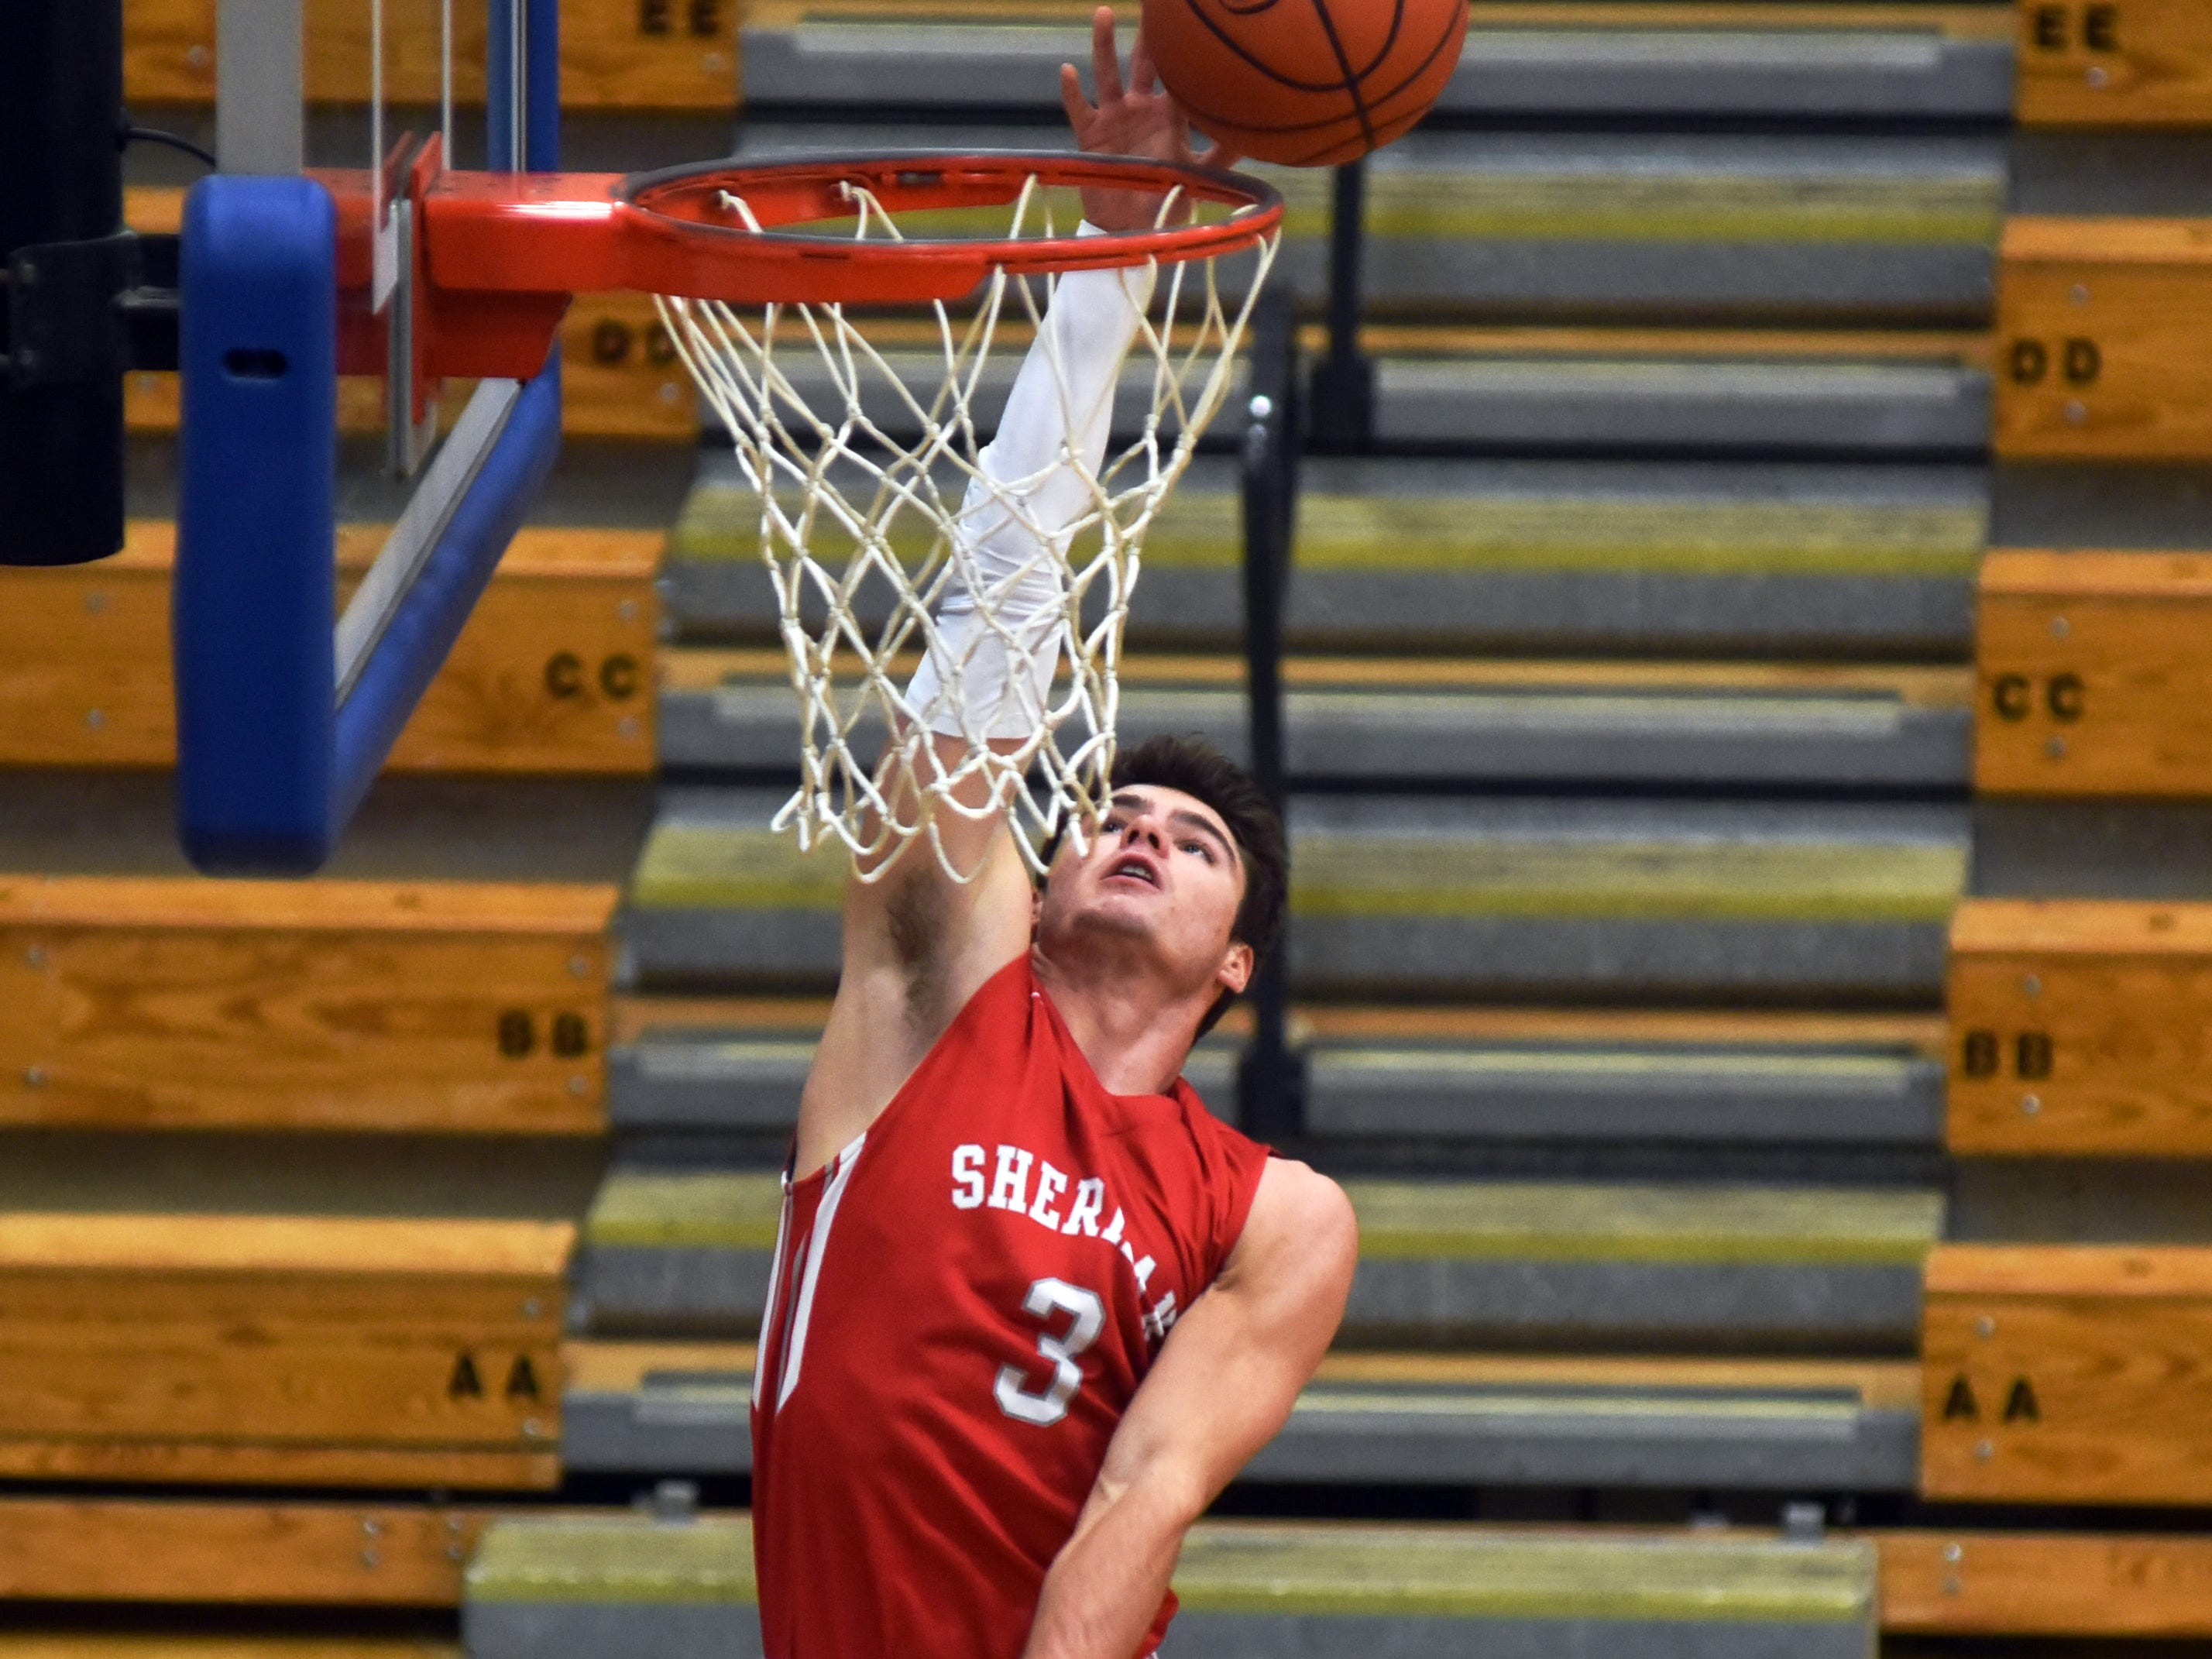 Sheridan's Ethan Heller goes up for a layup against Philo.